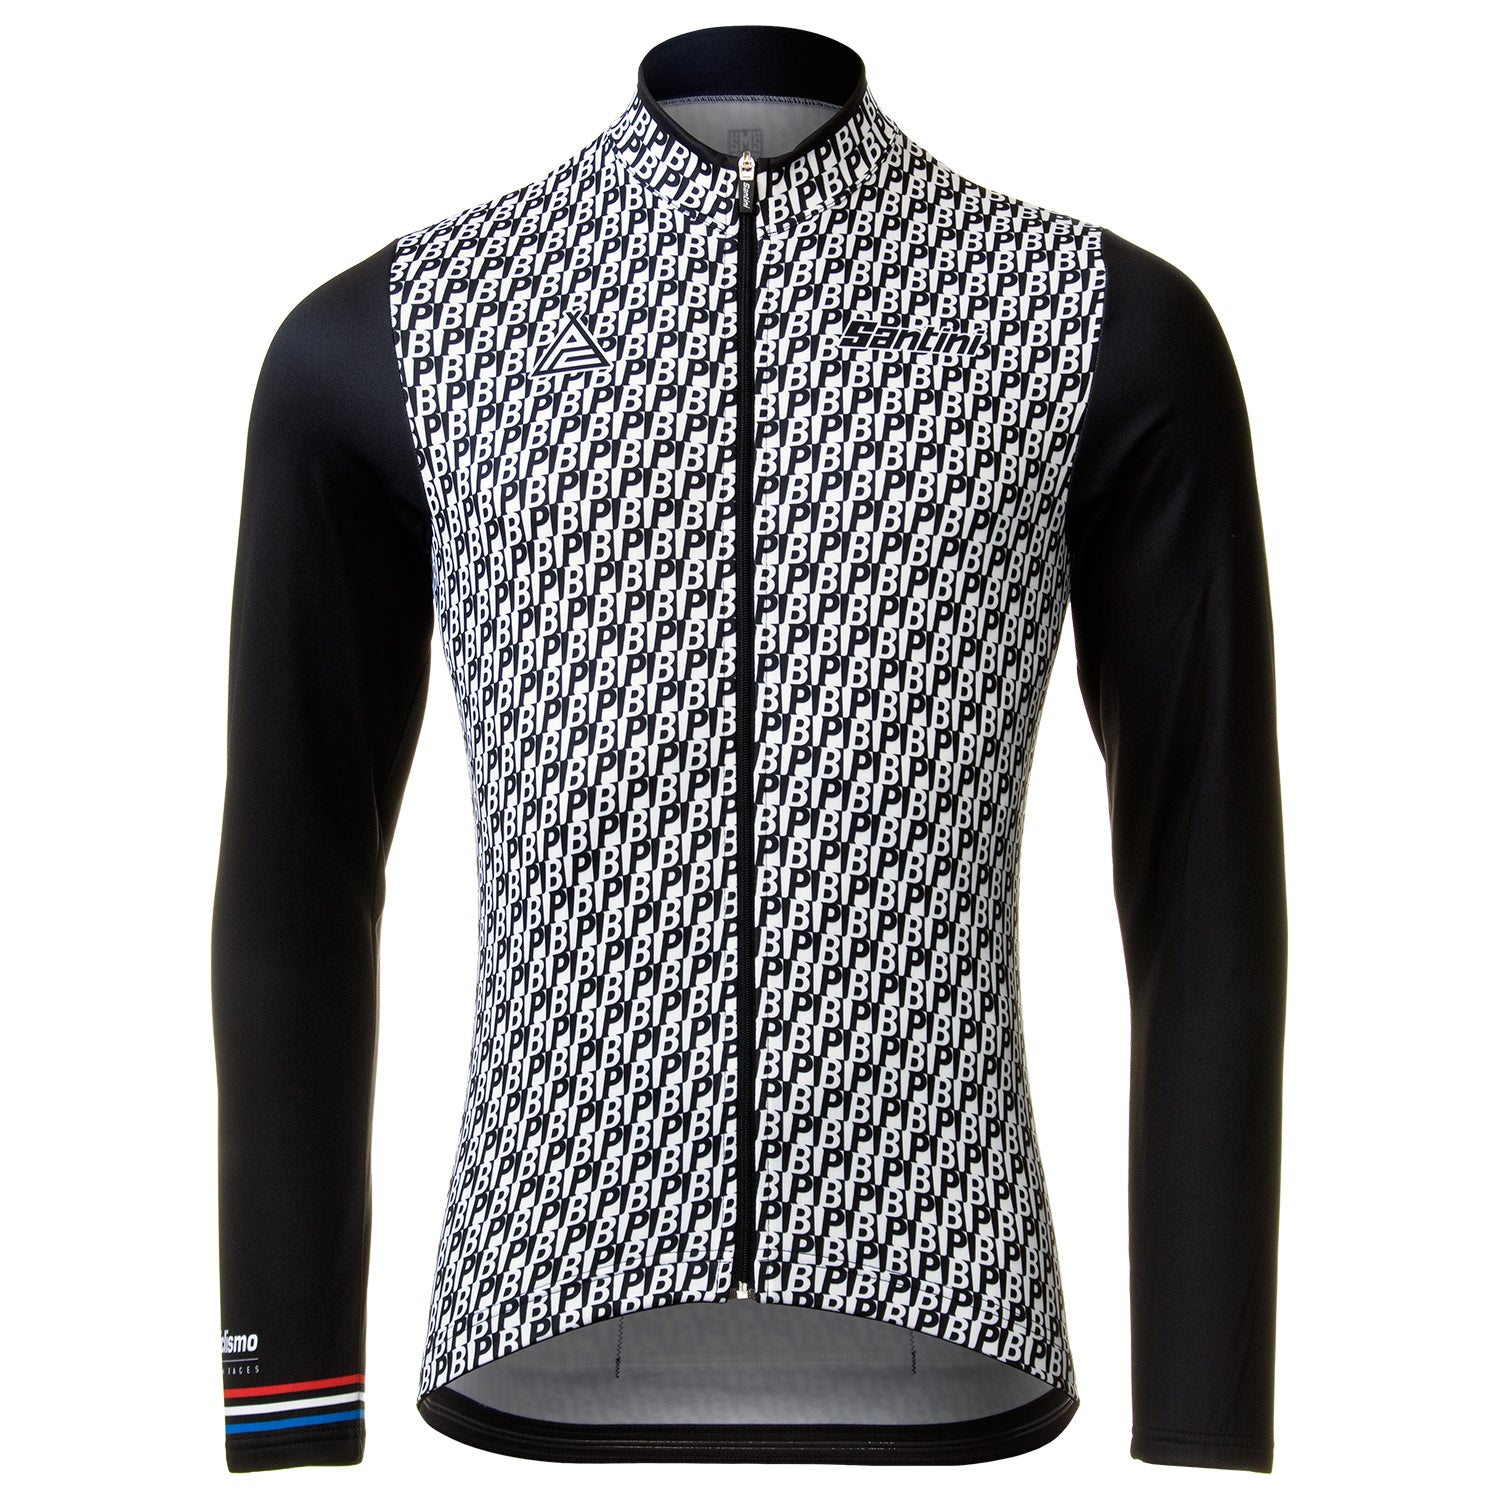 Bordeaux Paris Race Long Sleeve Jersey